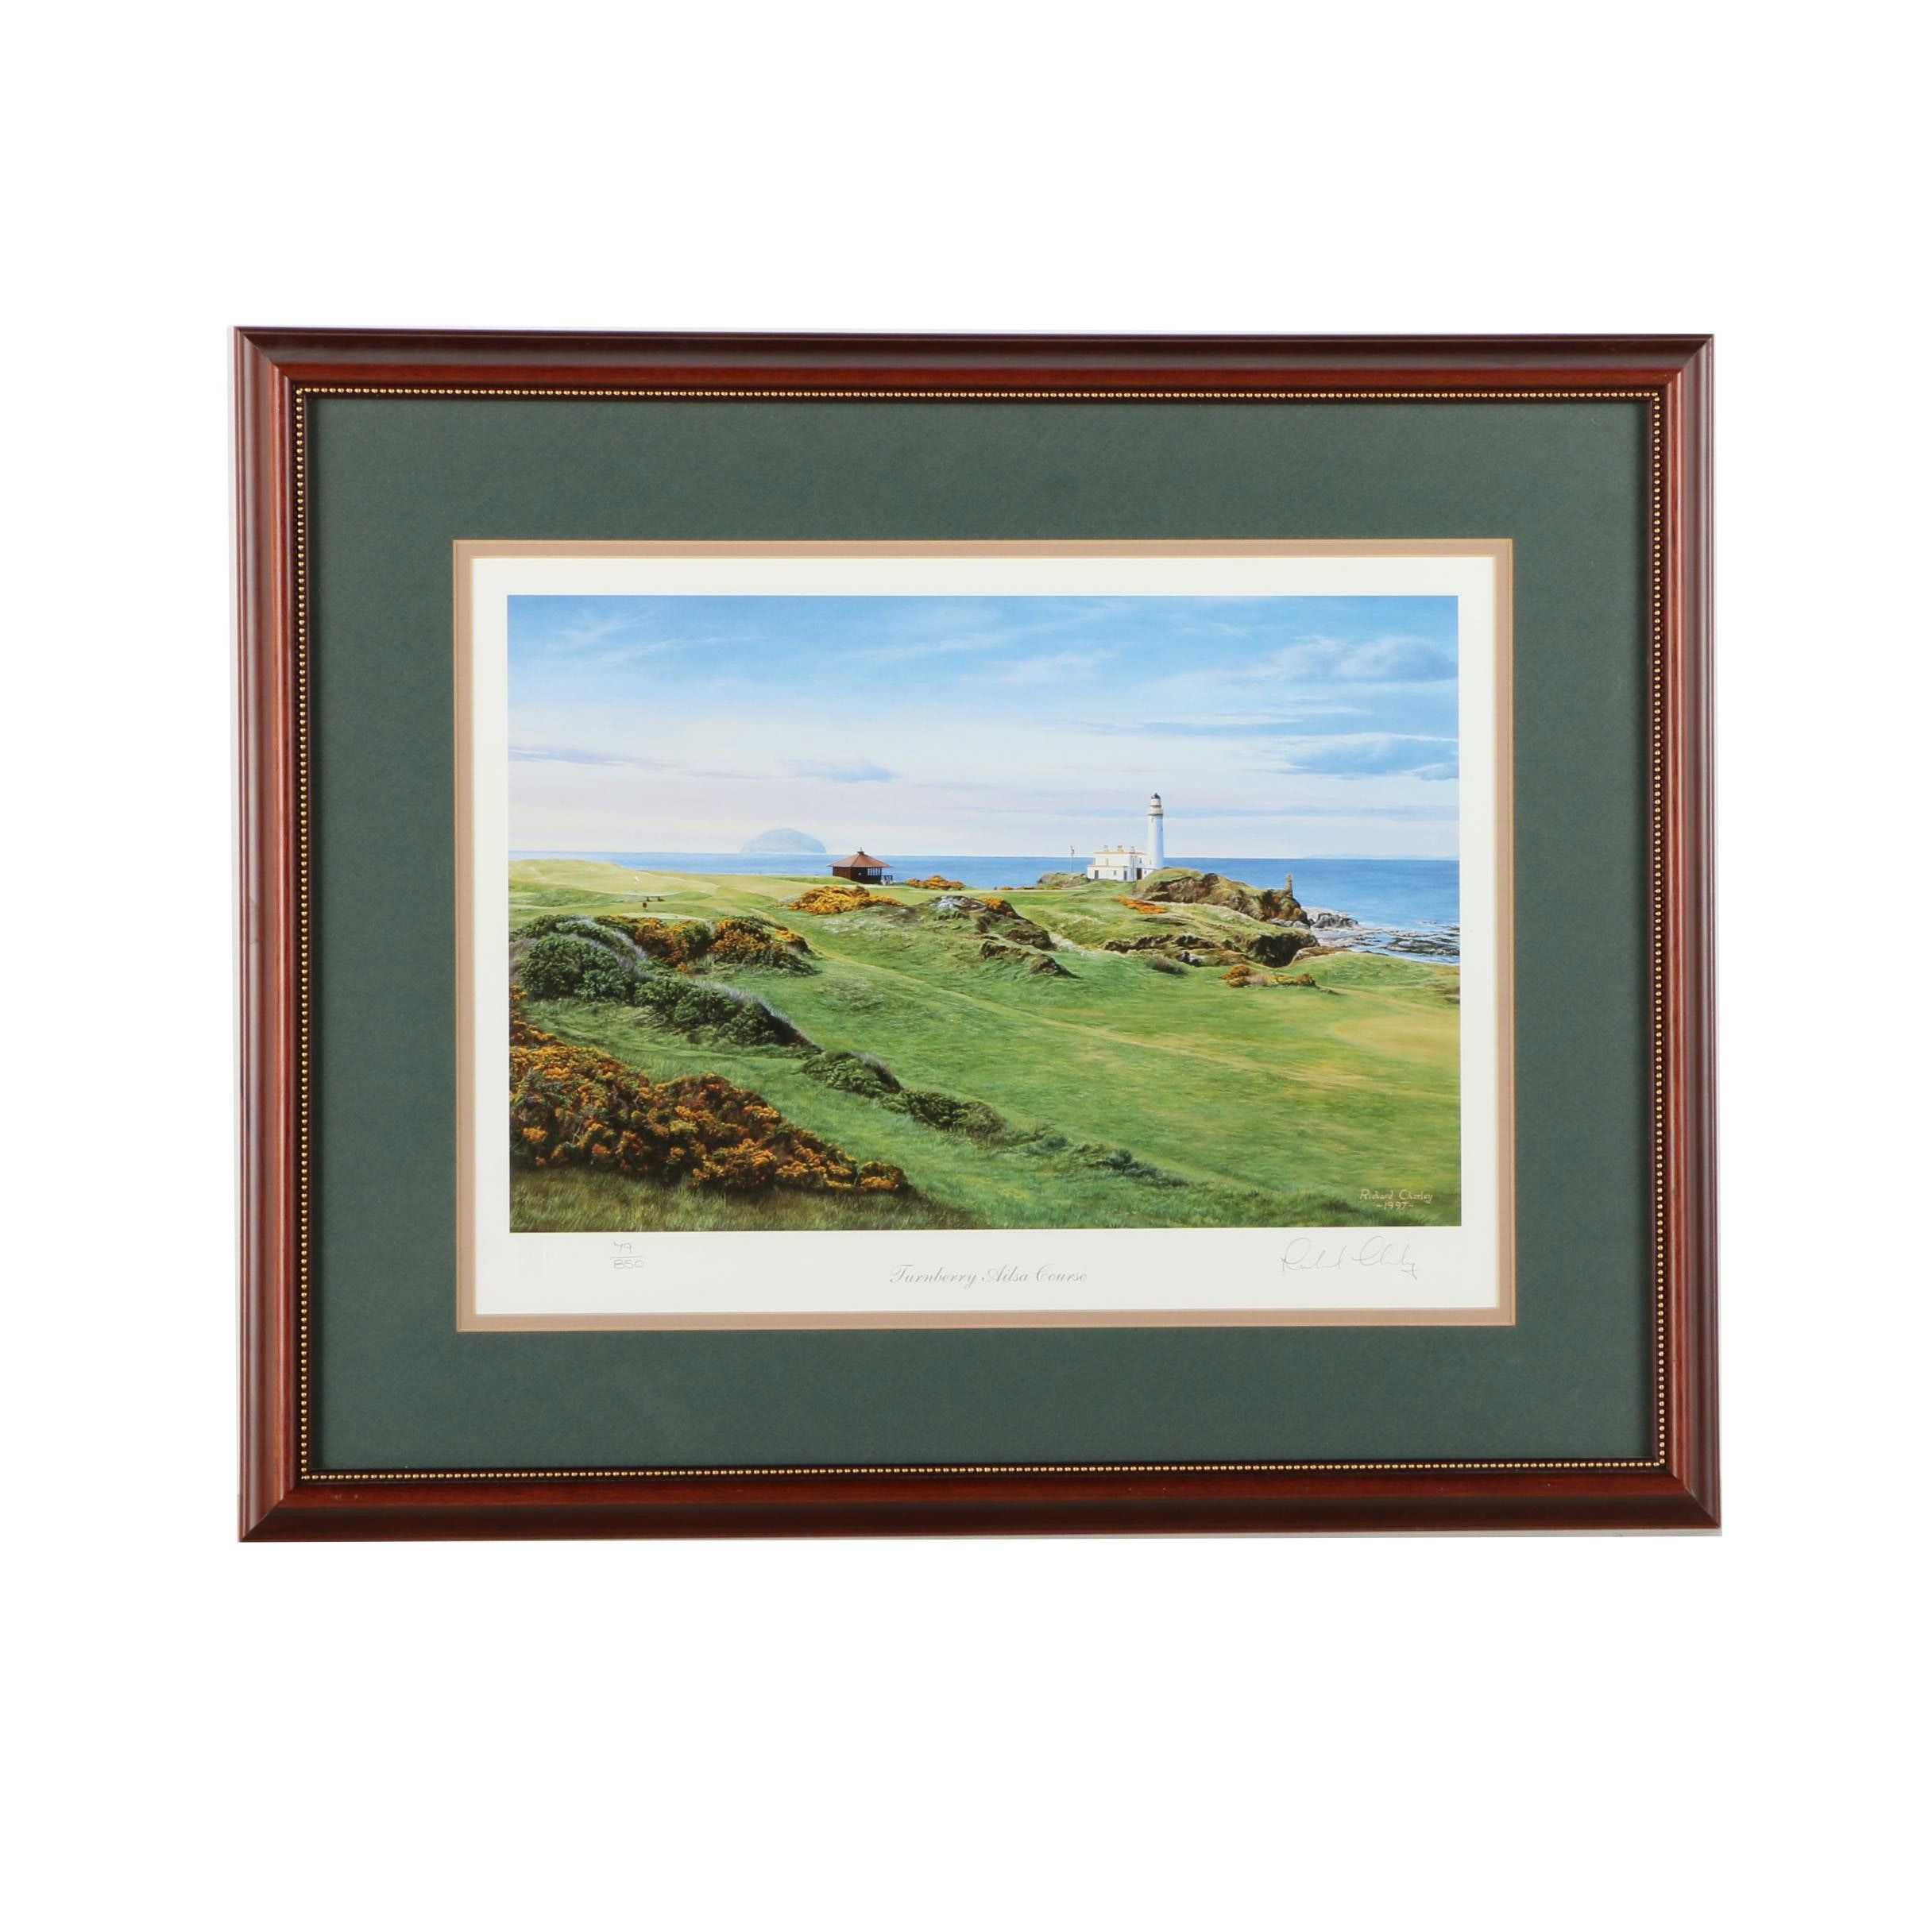 "Richard Charley Limited Edition Offset Lithograph ""Turnberry Aisla Course"""